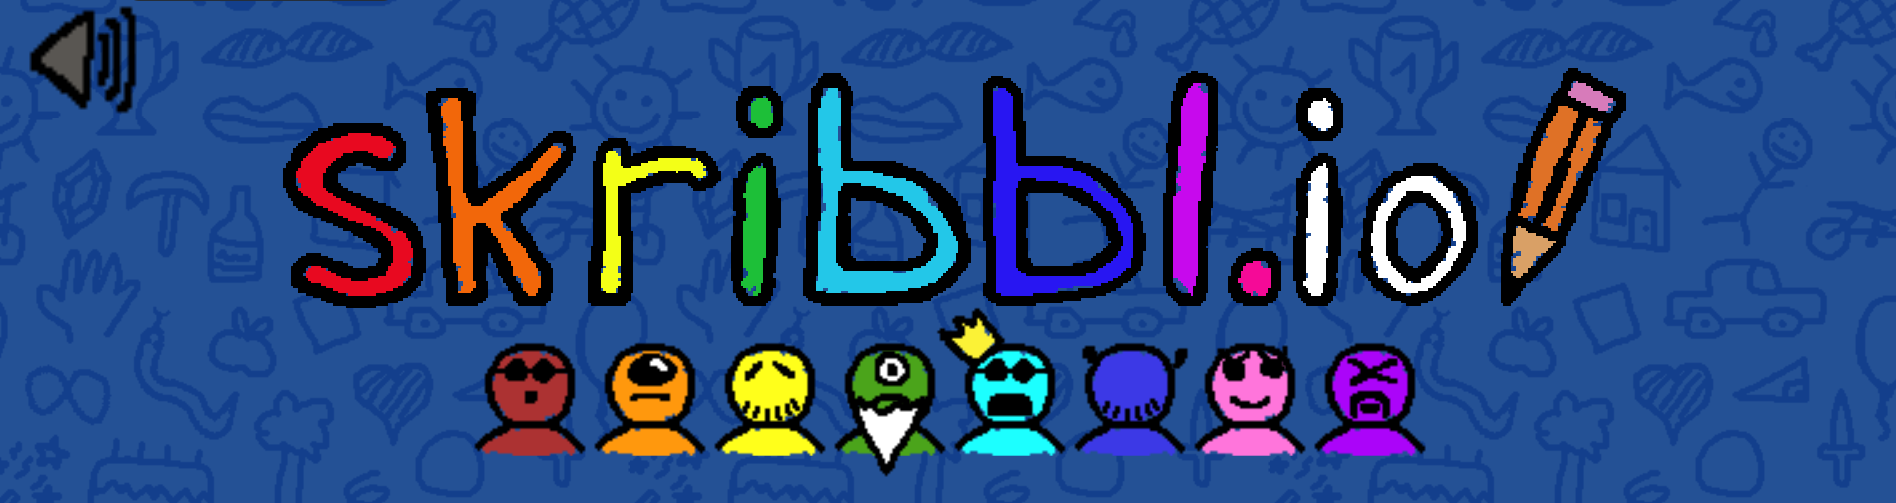 How To Beat Your Friends At Skribbl Io By Kevin Lin Medium Draw on your desktop while your friends on the other side of the world use their. how to beat your friends at skribbl io